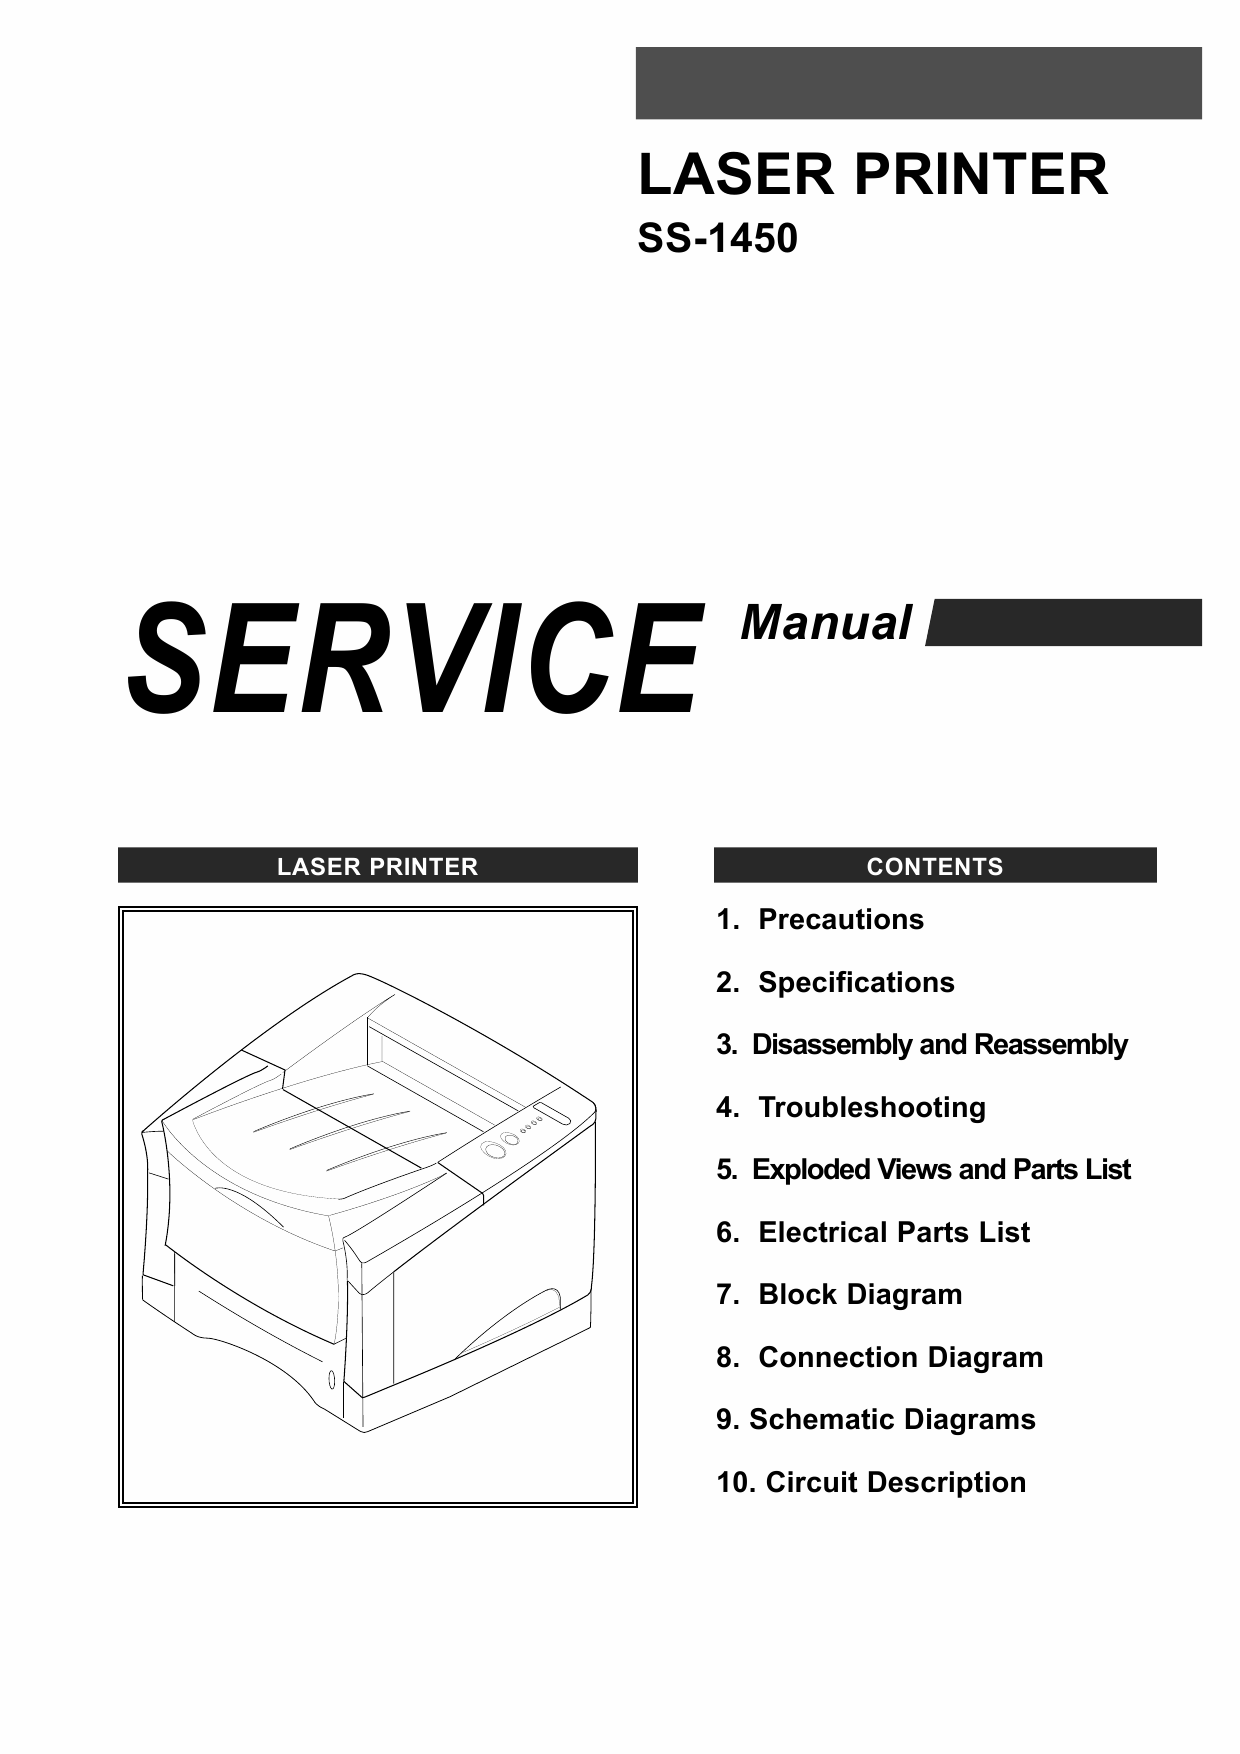 Samsung Laser-Printer SS-1450 Parts and Service Manual-1